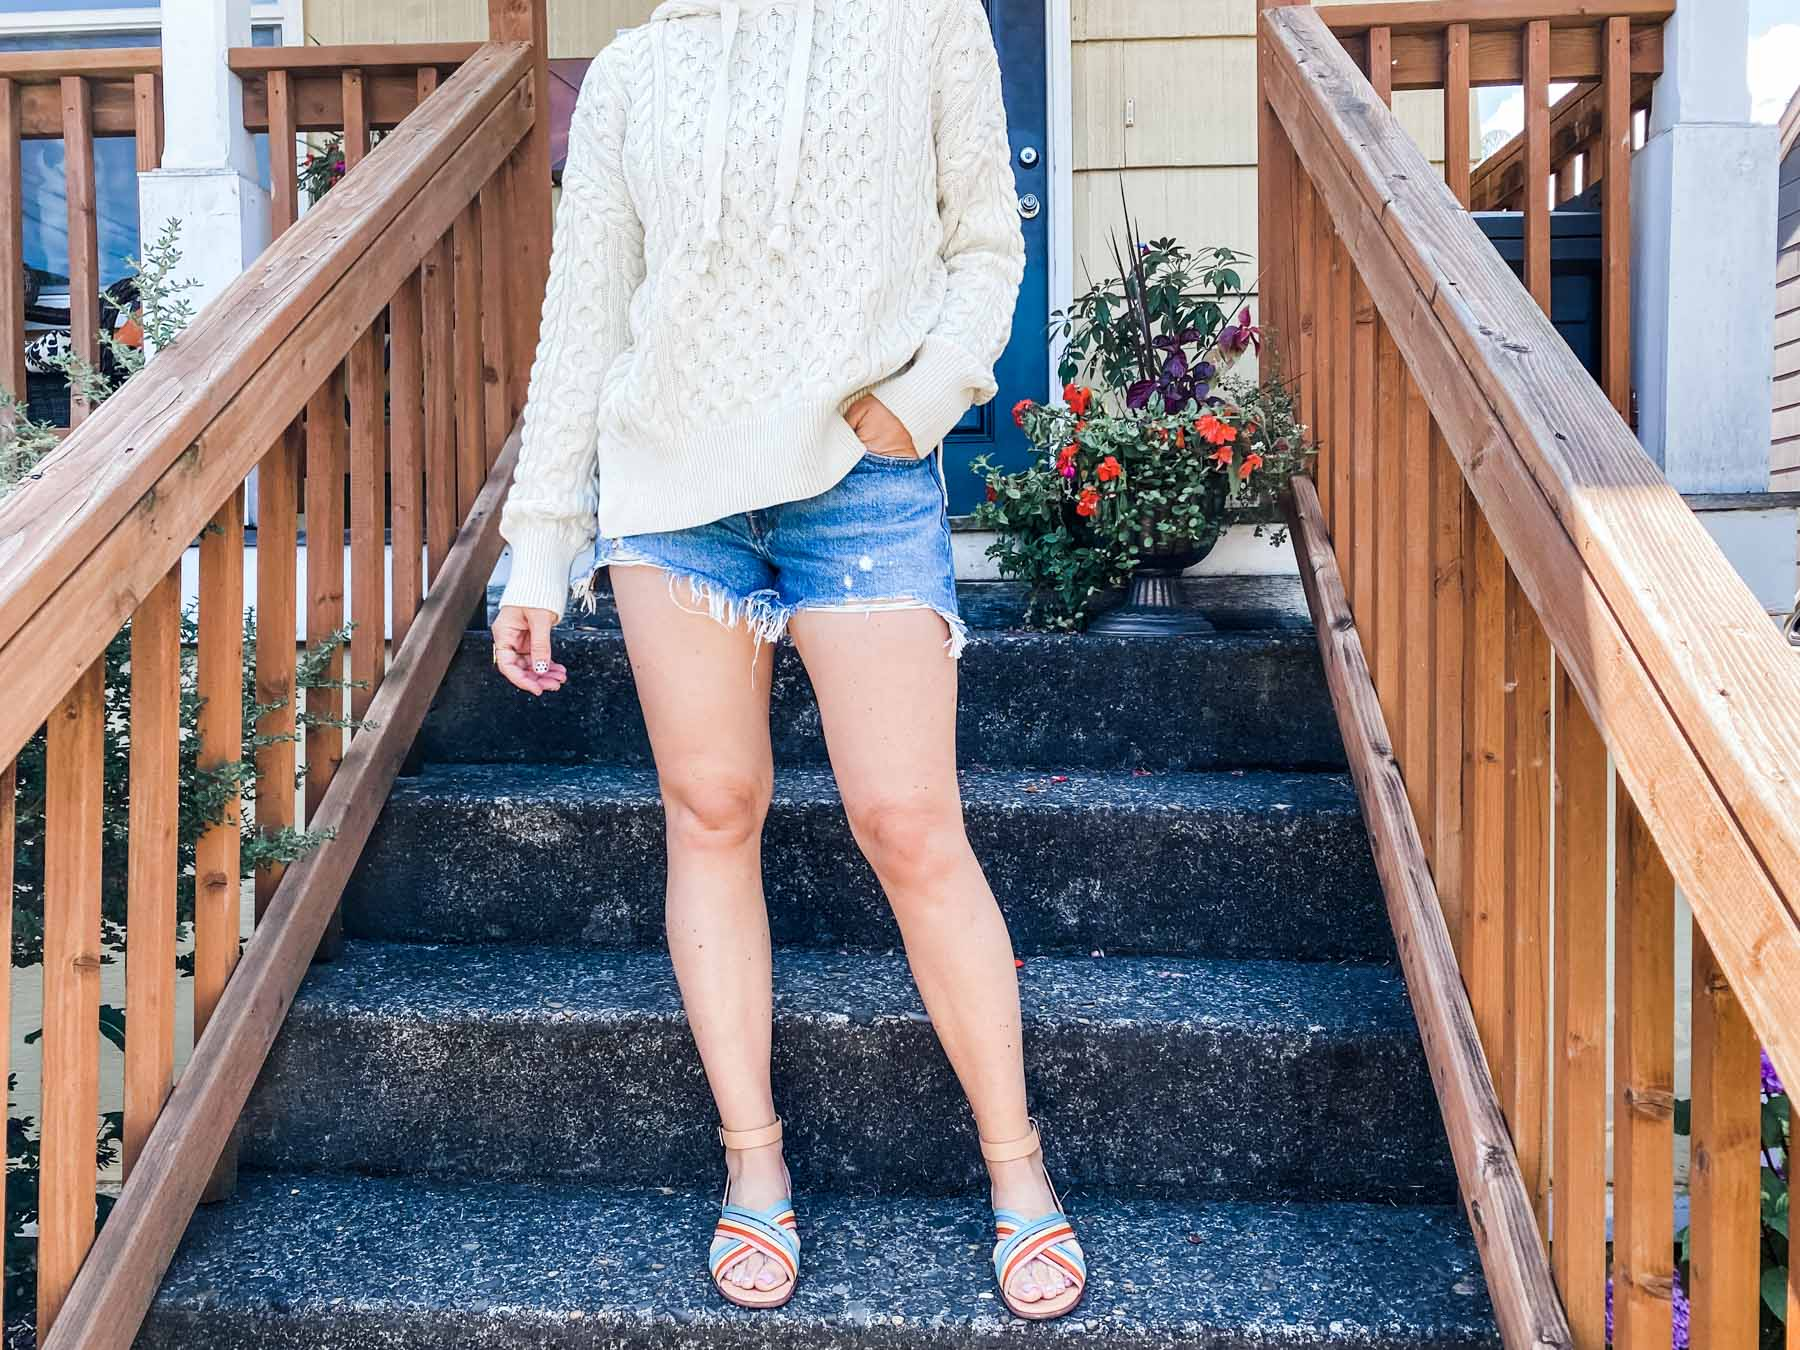 Lucky us! The Labor Day Sales have deals are some of our faves: Levi's, Adidas, P448s, Frye & Victoria Emerson -- here's what I own & love.